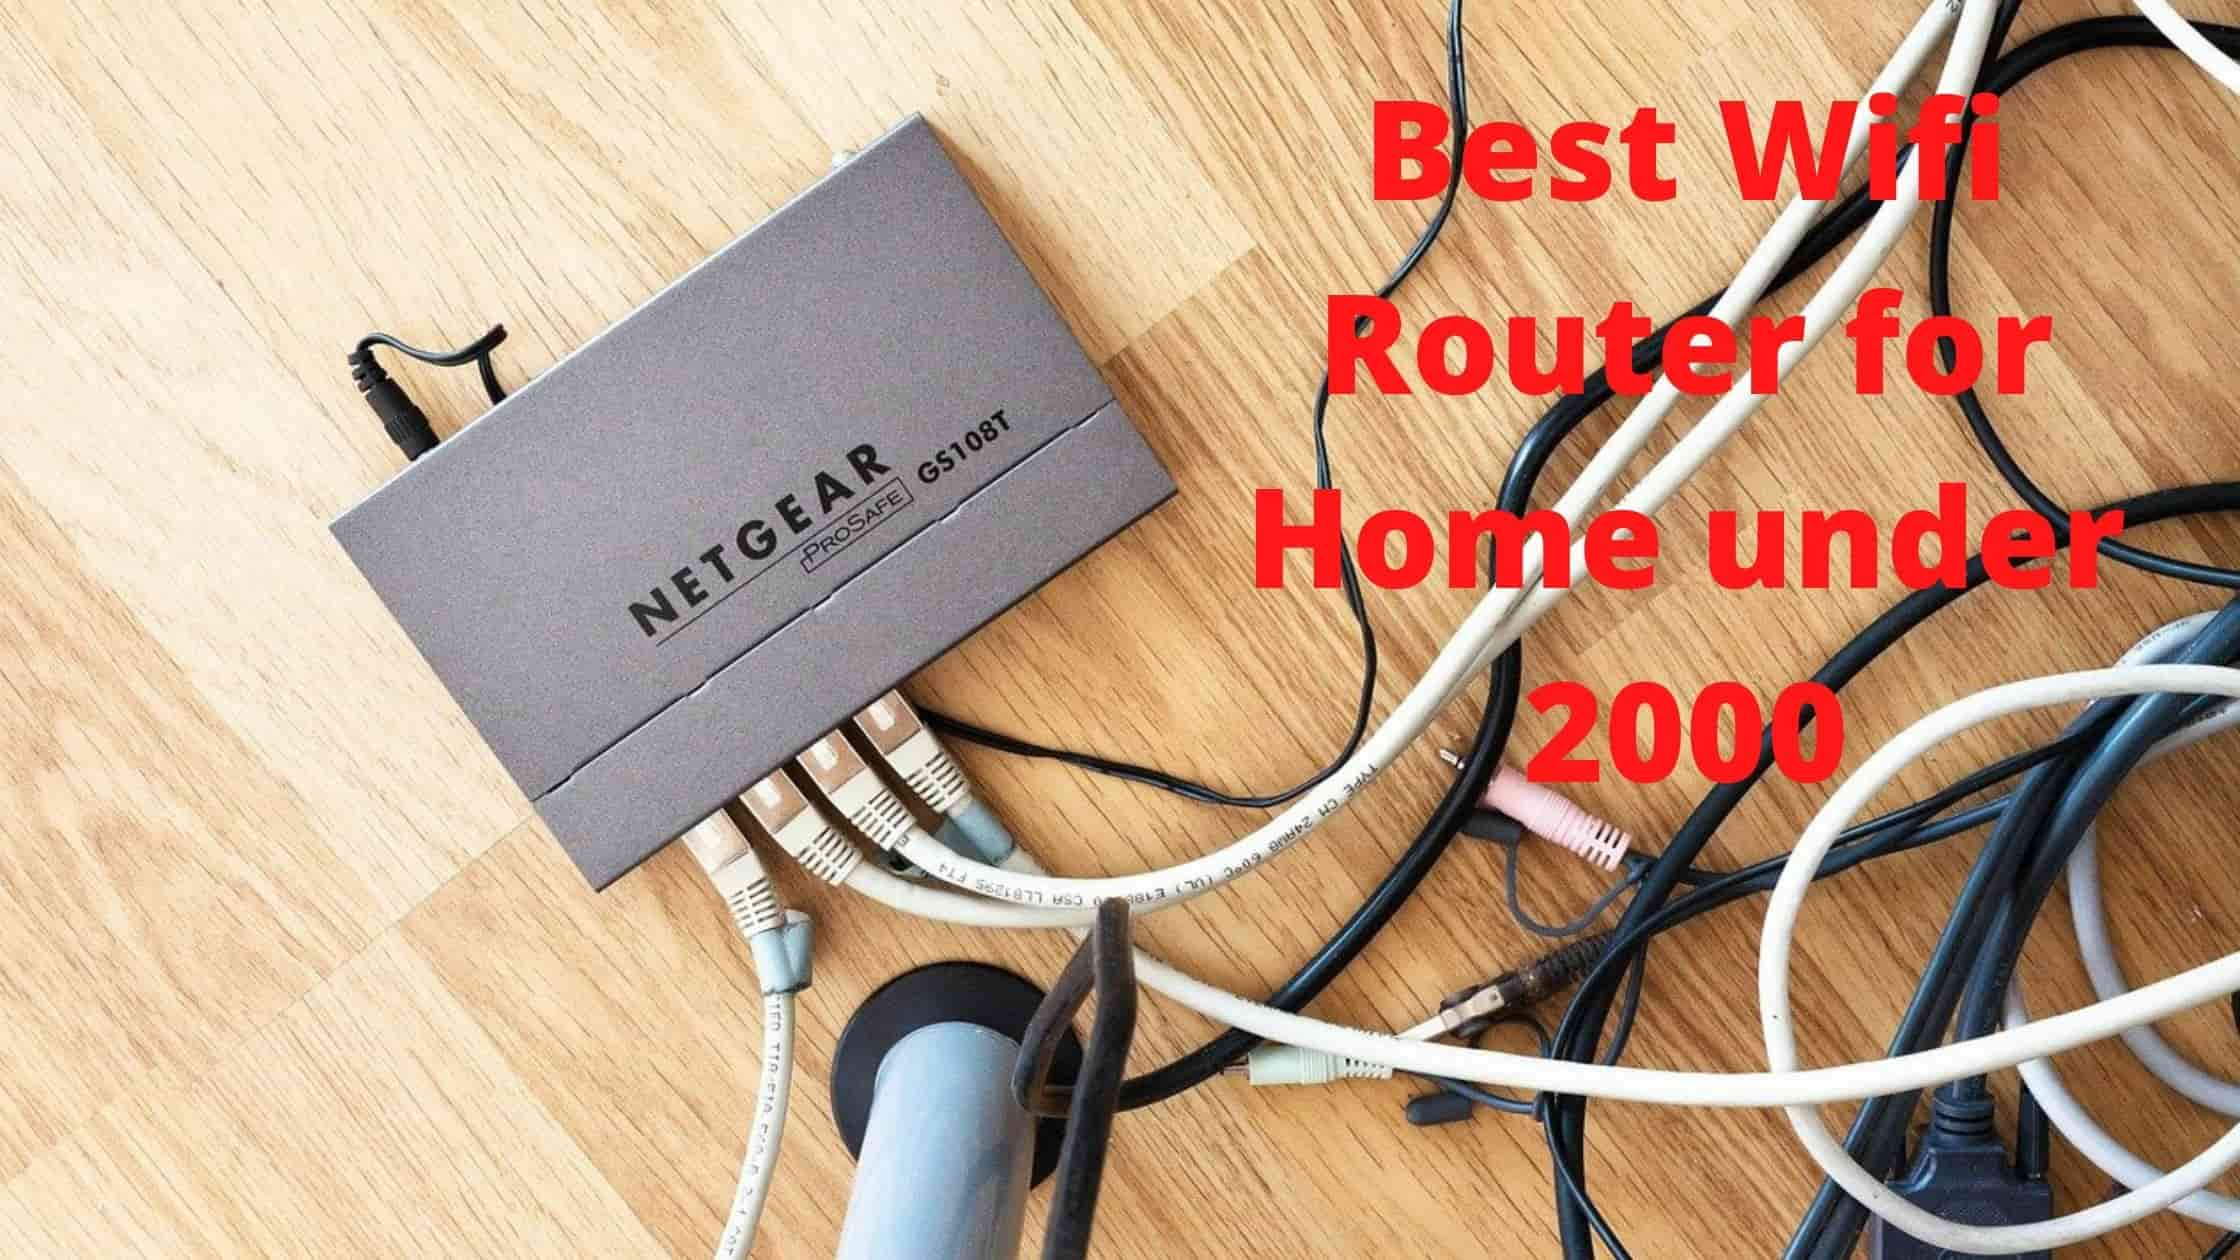 Best Wifi Router for Home under 2000